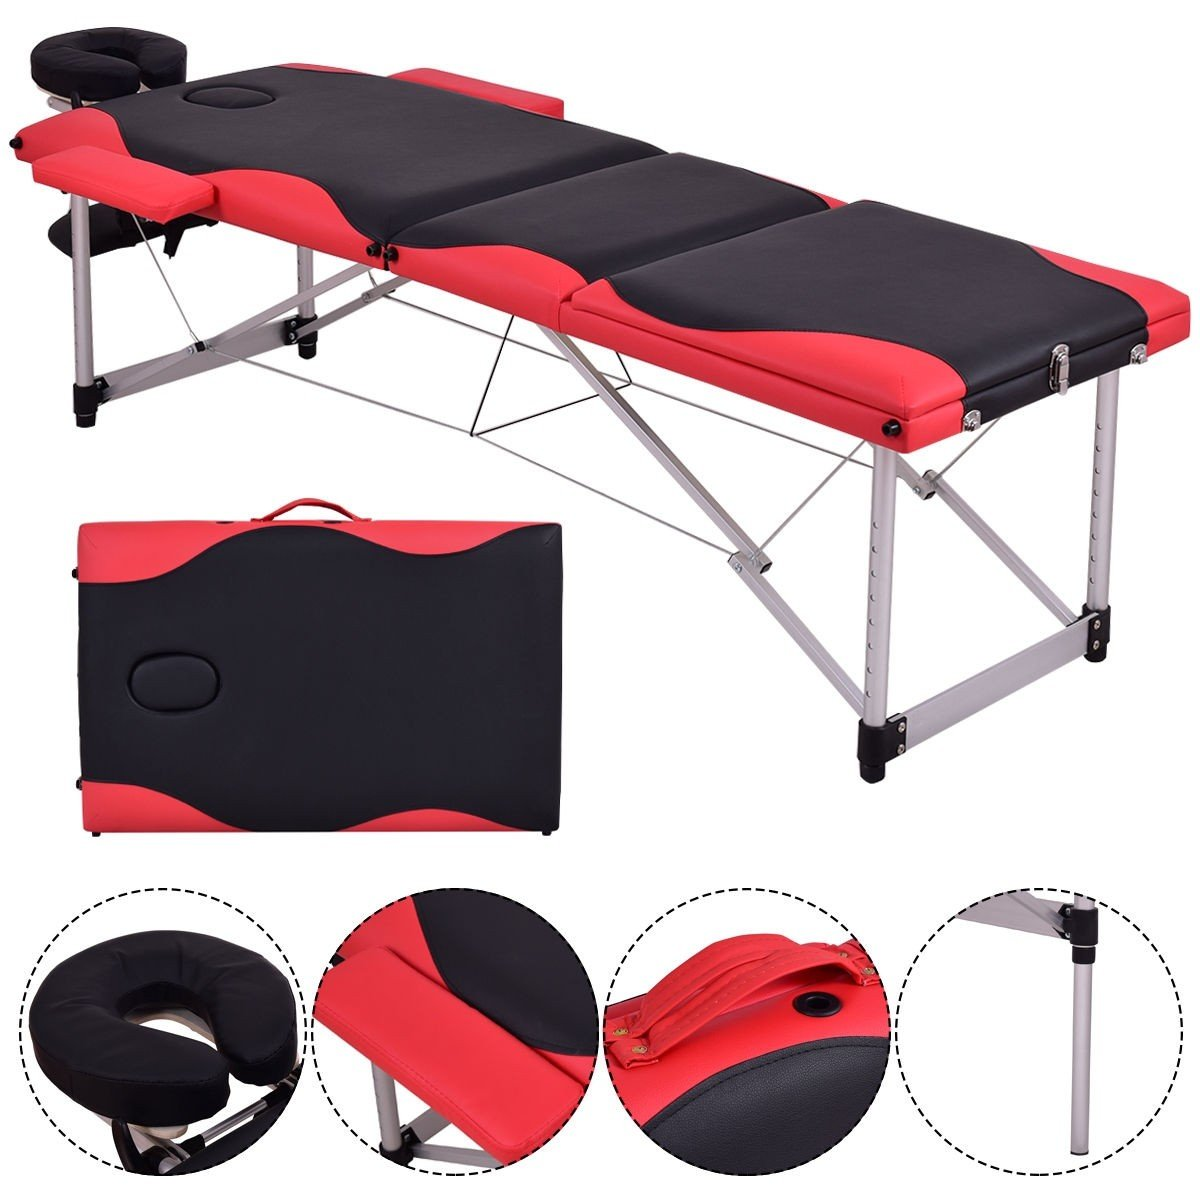 84 L Aluminum Massage Table – Adjustable Portable Massage Bed for Salon Beauty Physiotherapy Facial SPA Tattoo Household 3 Section